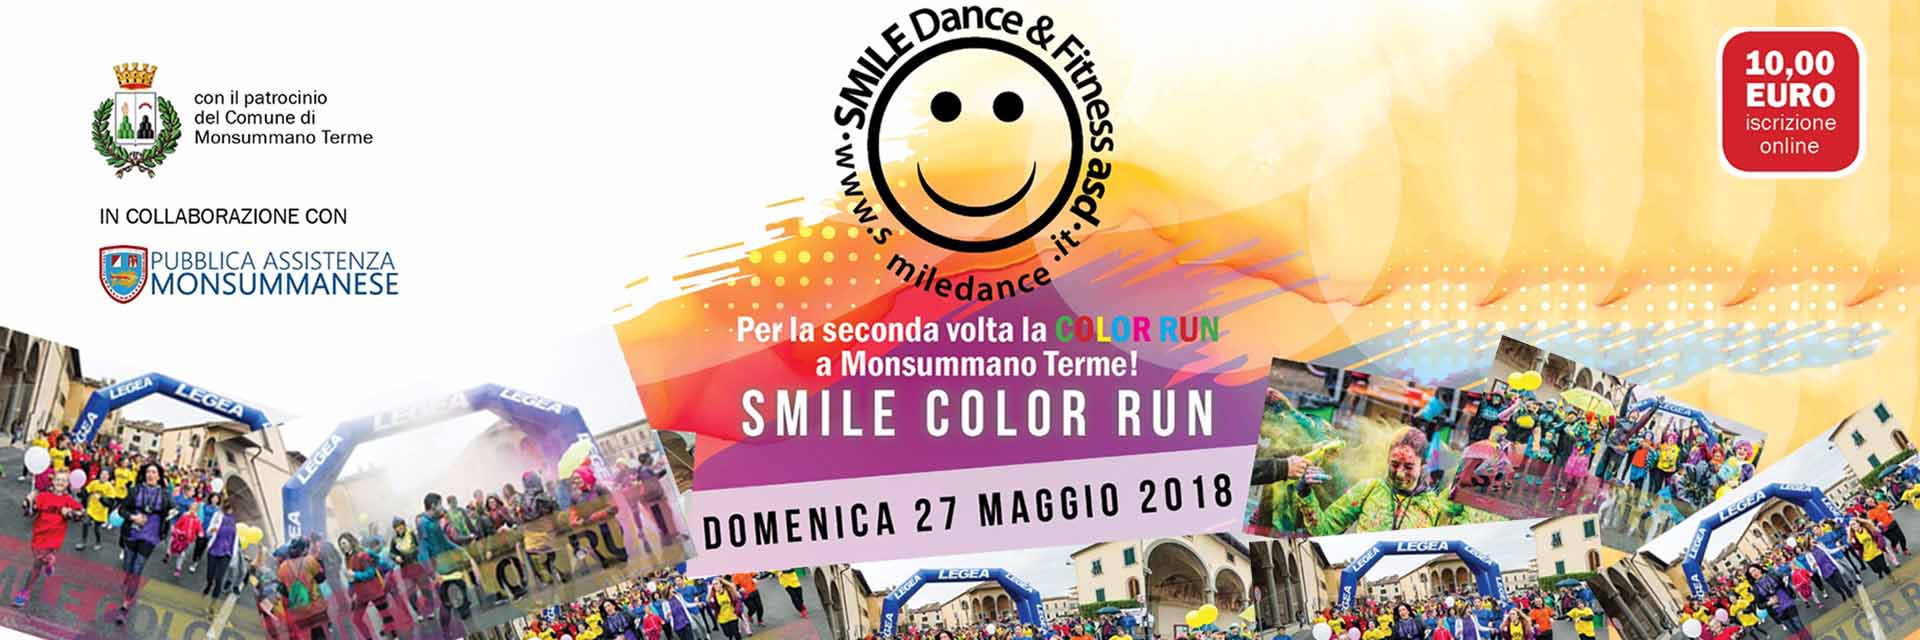 smile color run 27 maggio 2018